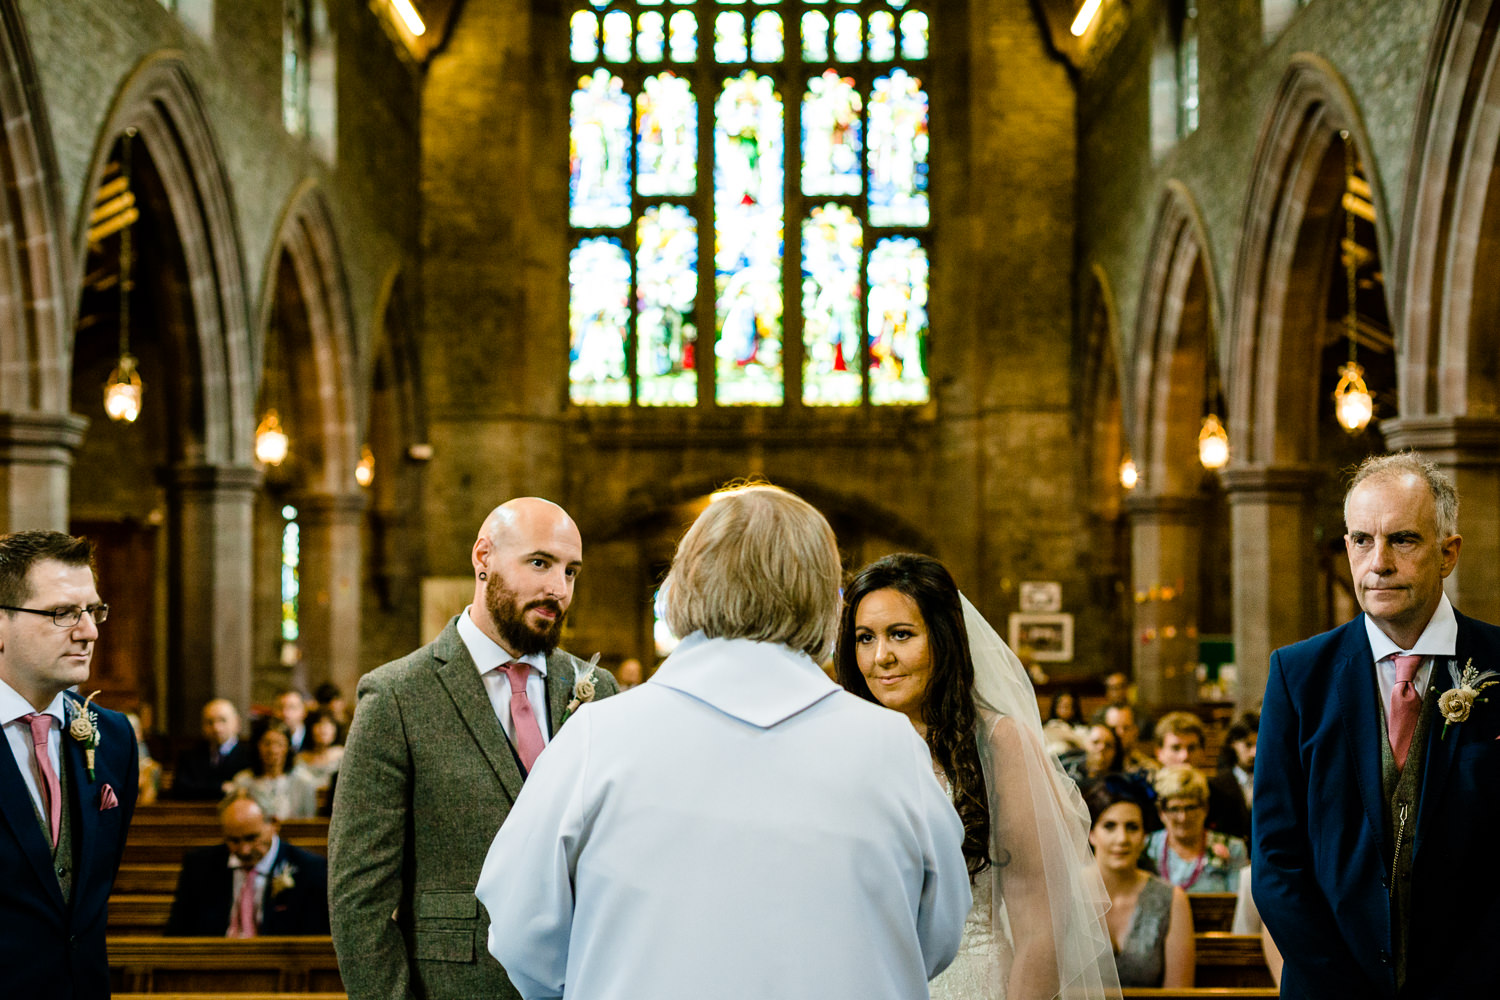 Rochdale-Wedding-Photographer-034.jpg